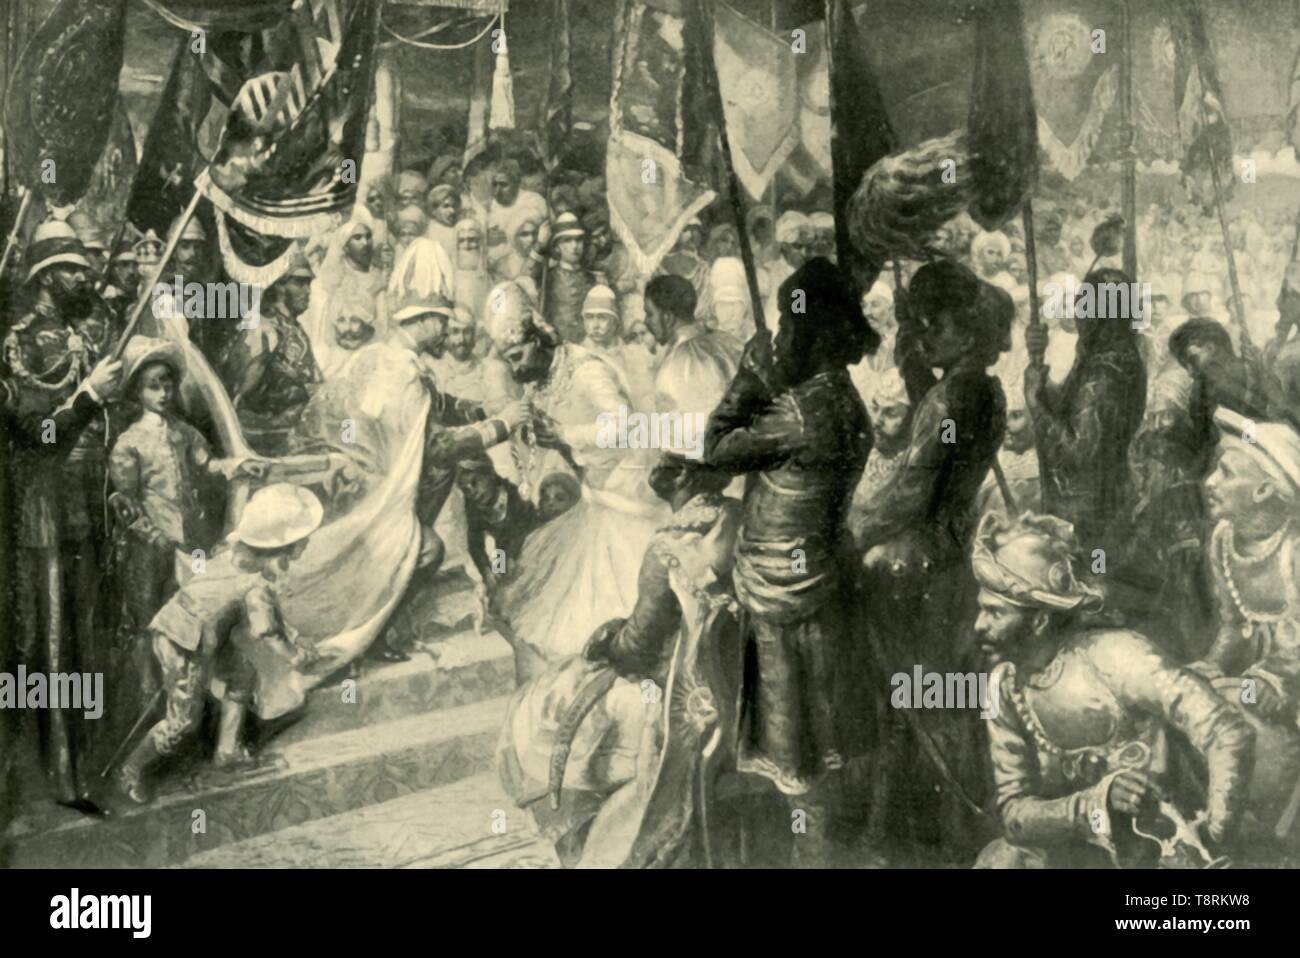 'The Prince of Wales Conferring the Order of the Star of India at Calcutta', 1901. Creator: Unknown. - Stock Image